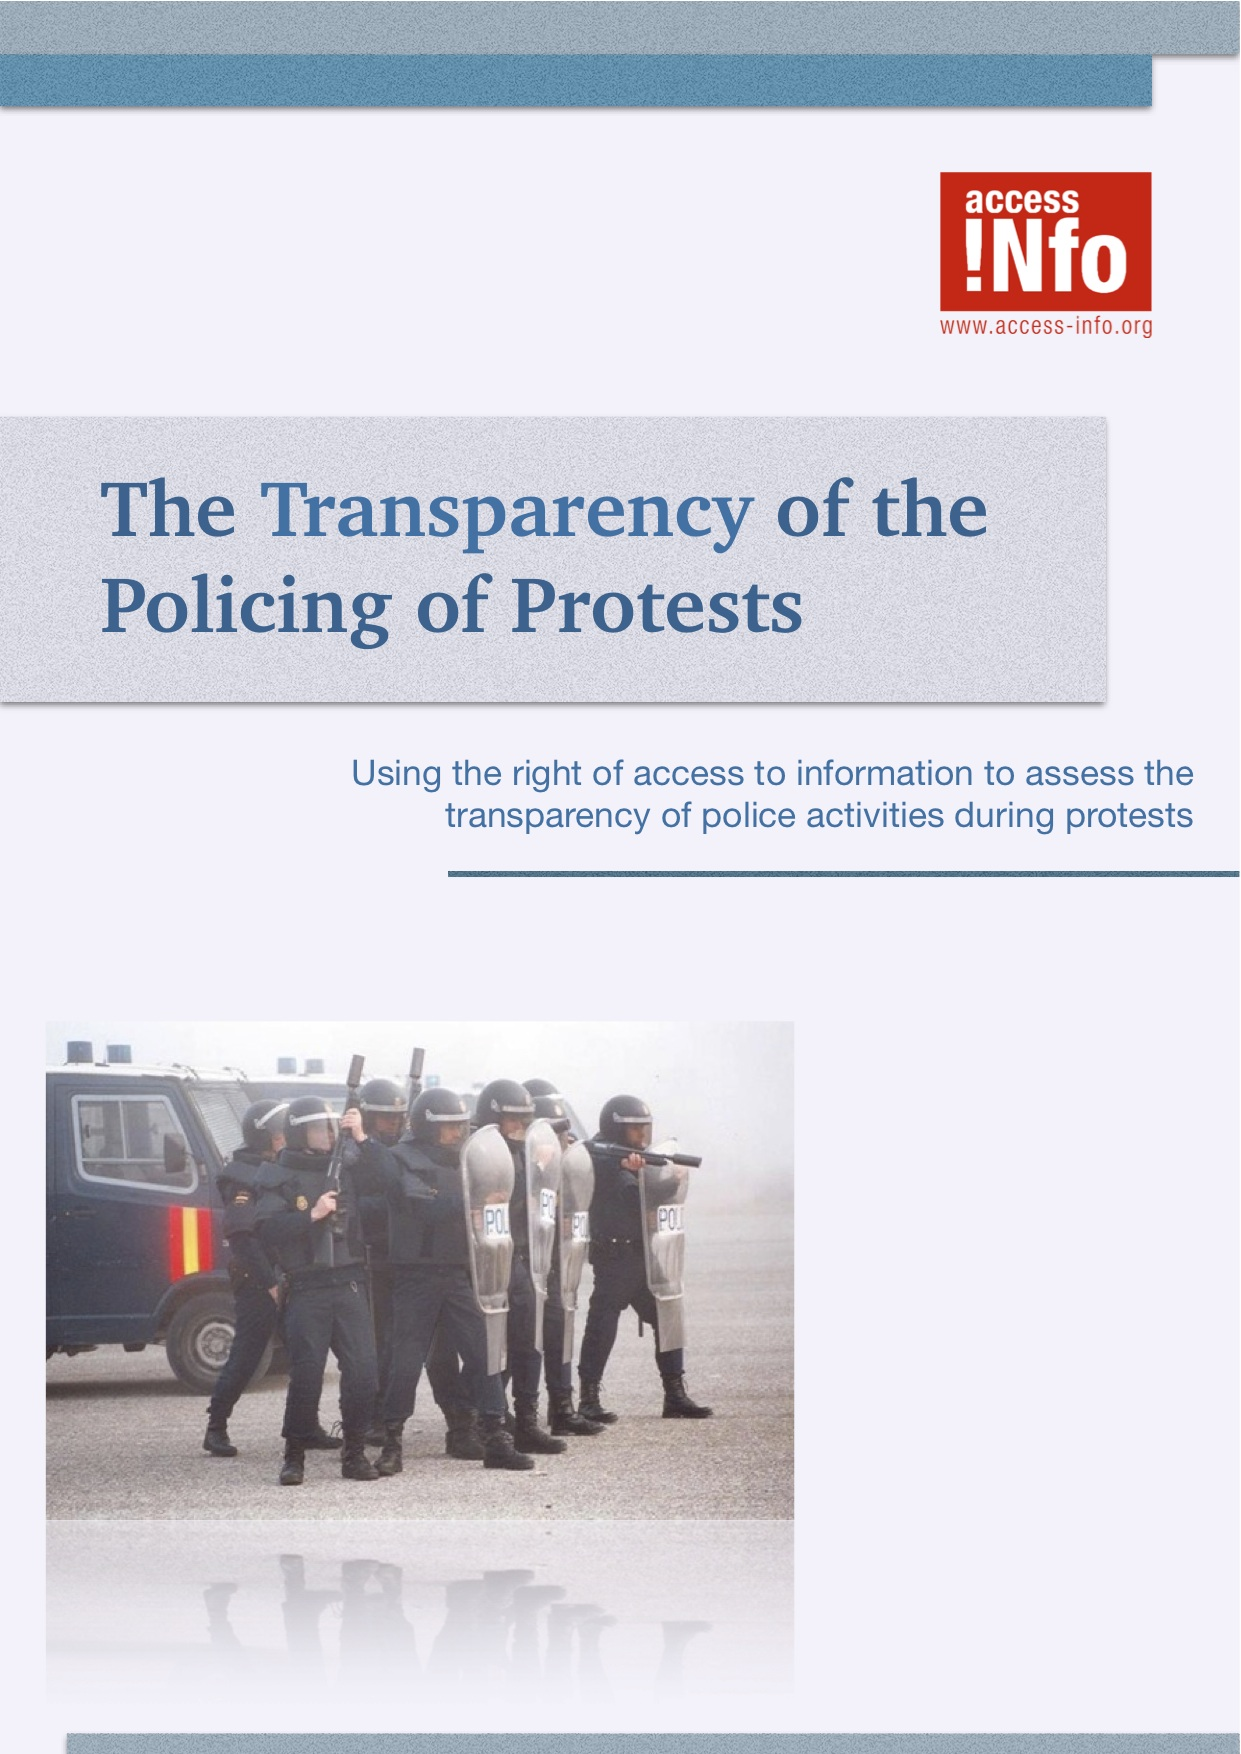 The Transparency of the Policing of Protests